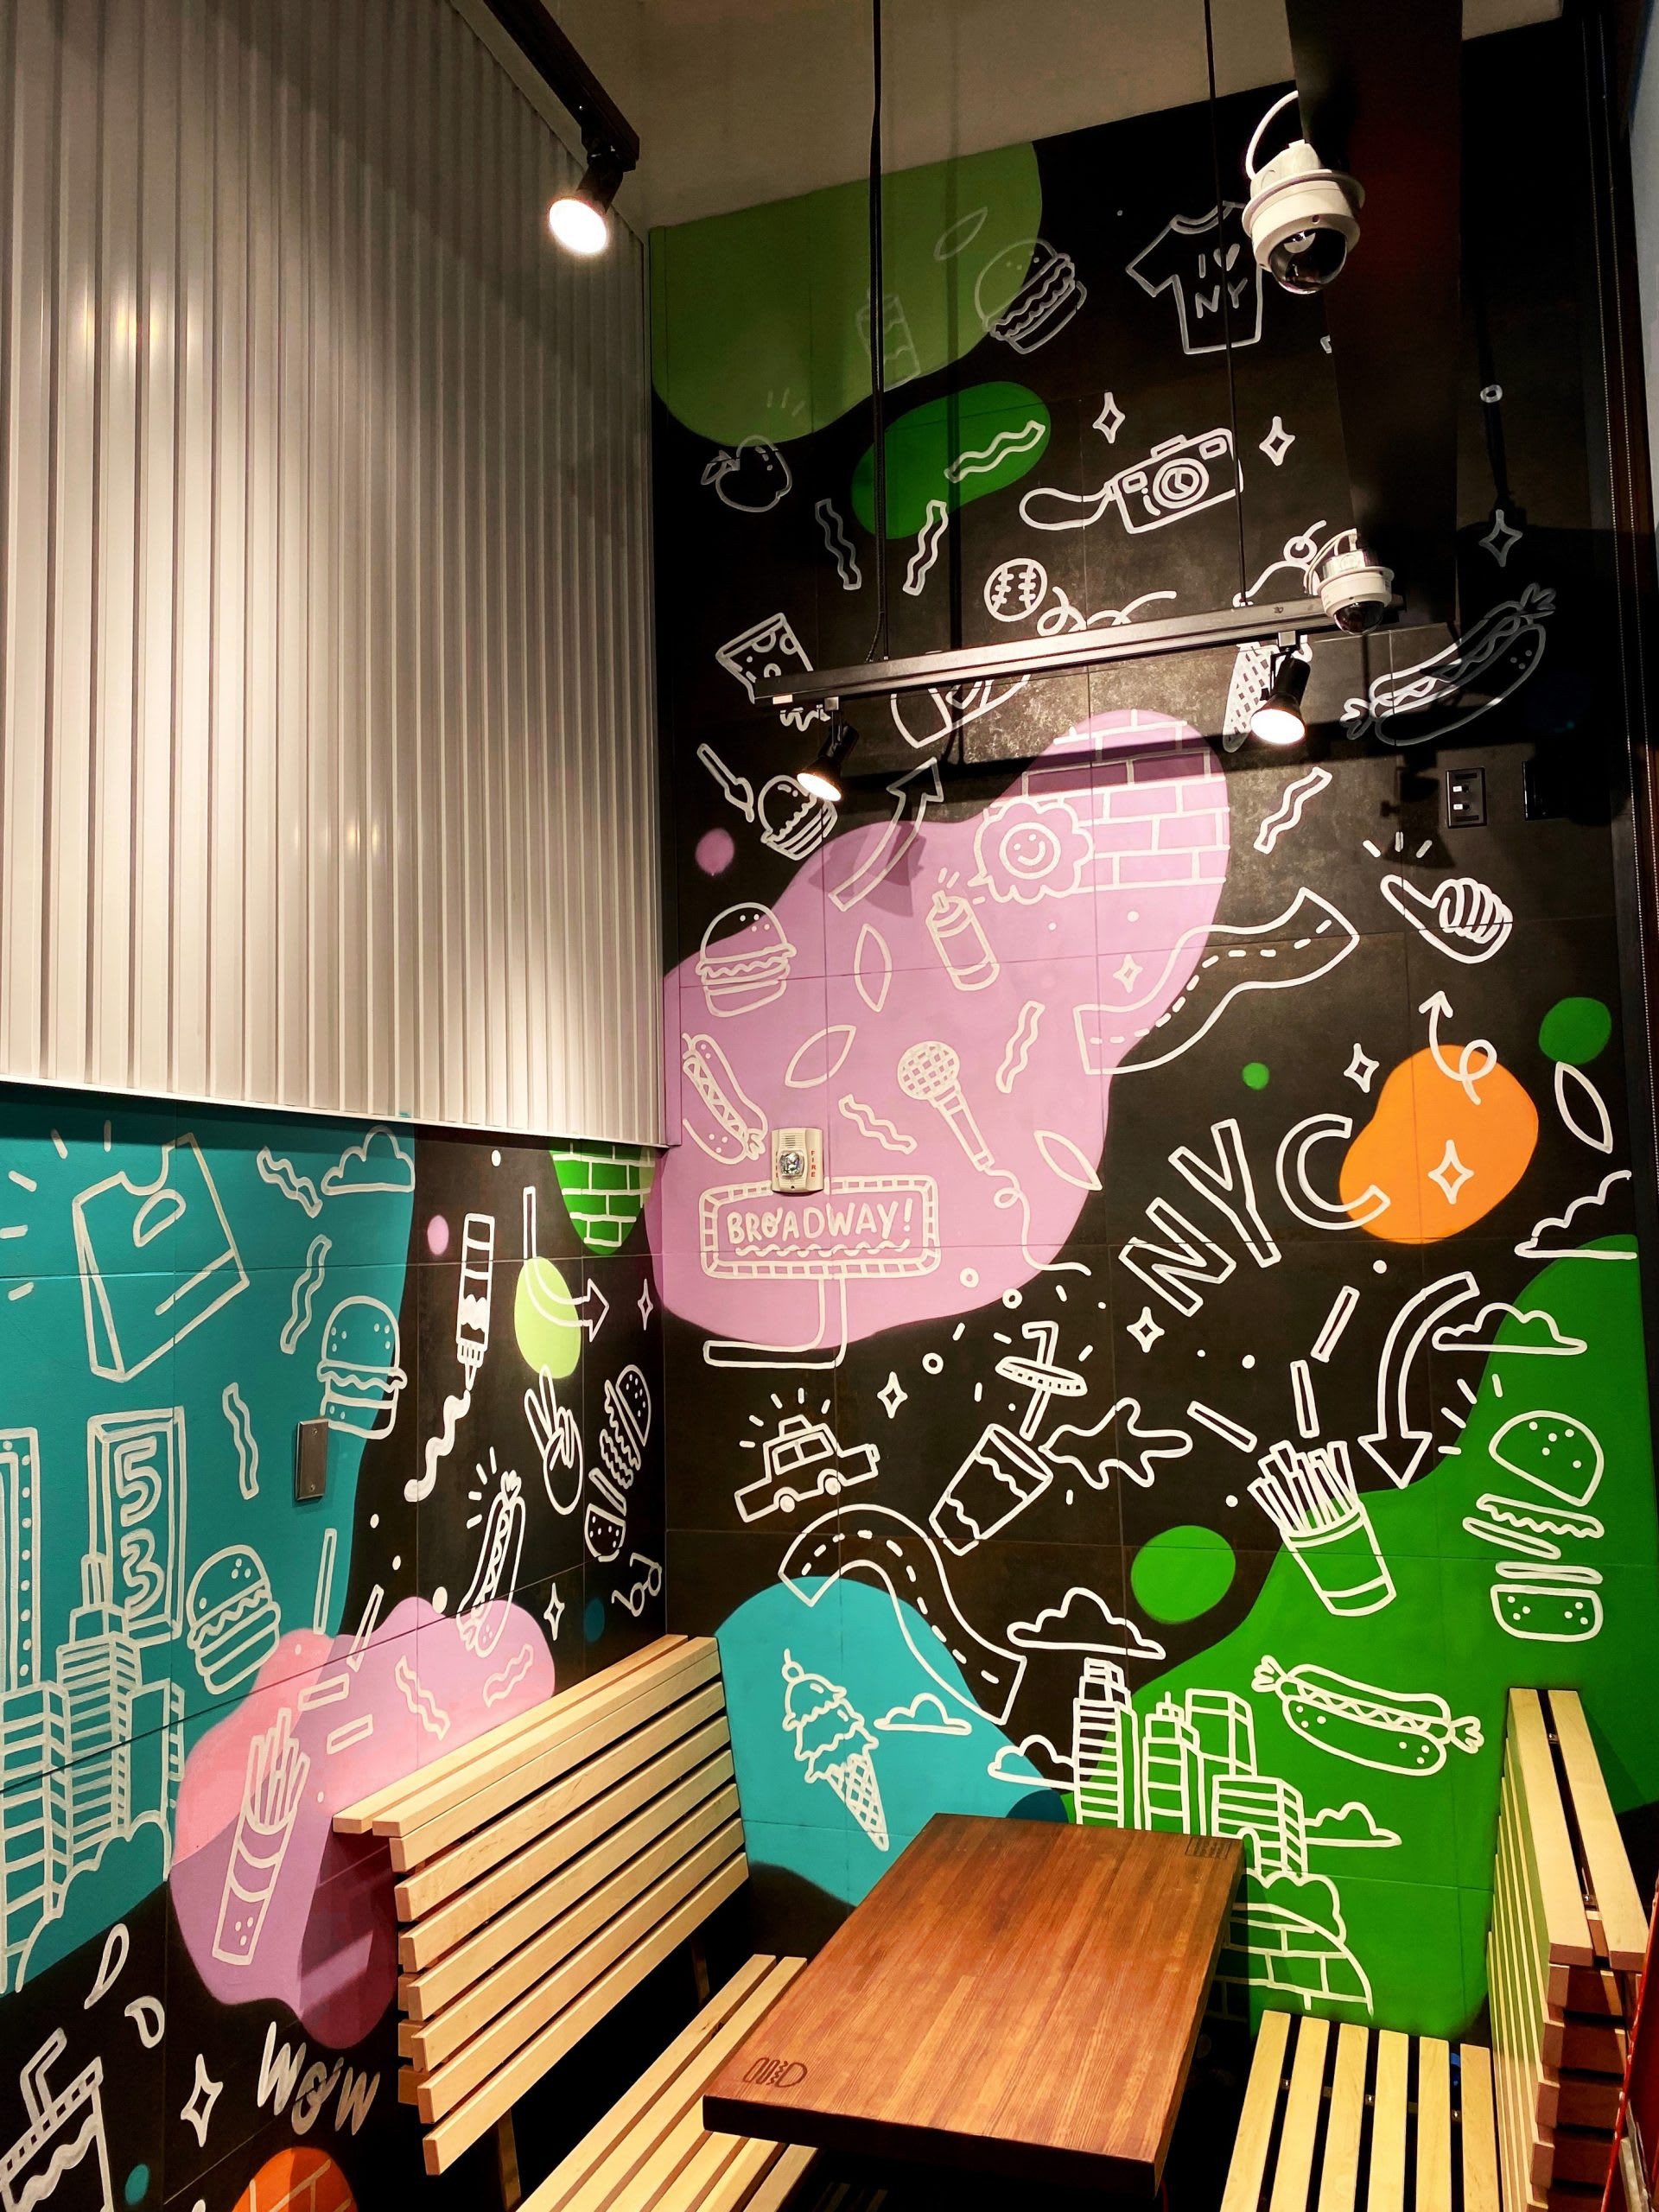 Shake Shack Manhattan New York Mural by Steffi Tsai